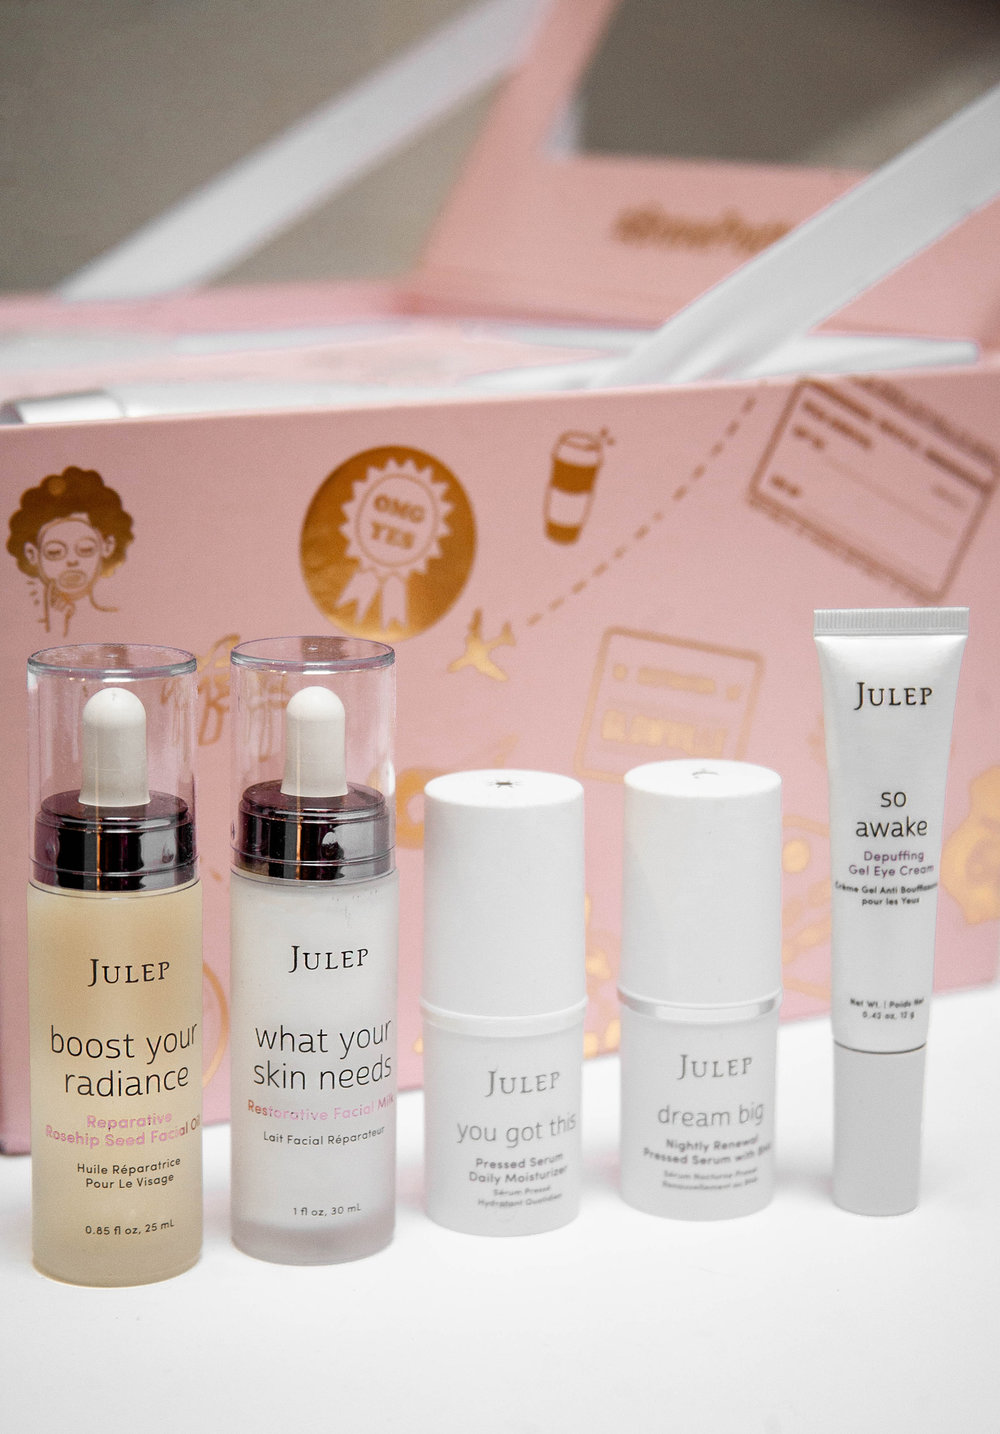 Julep Beauty skincare